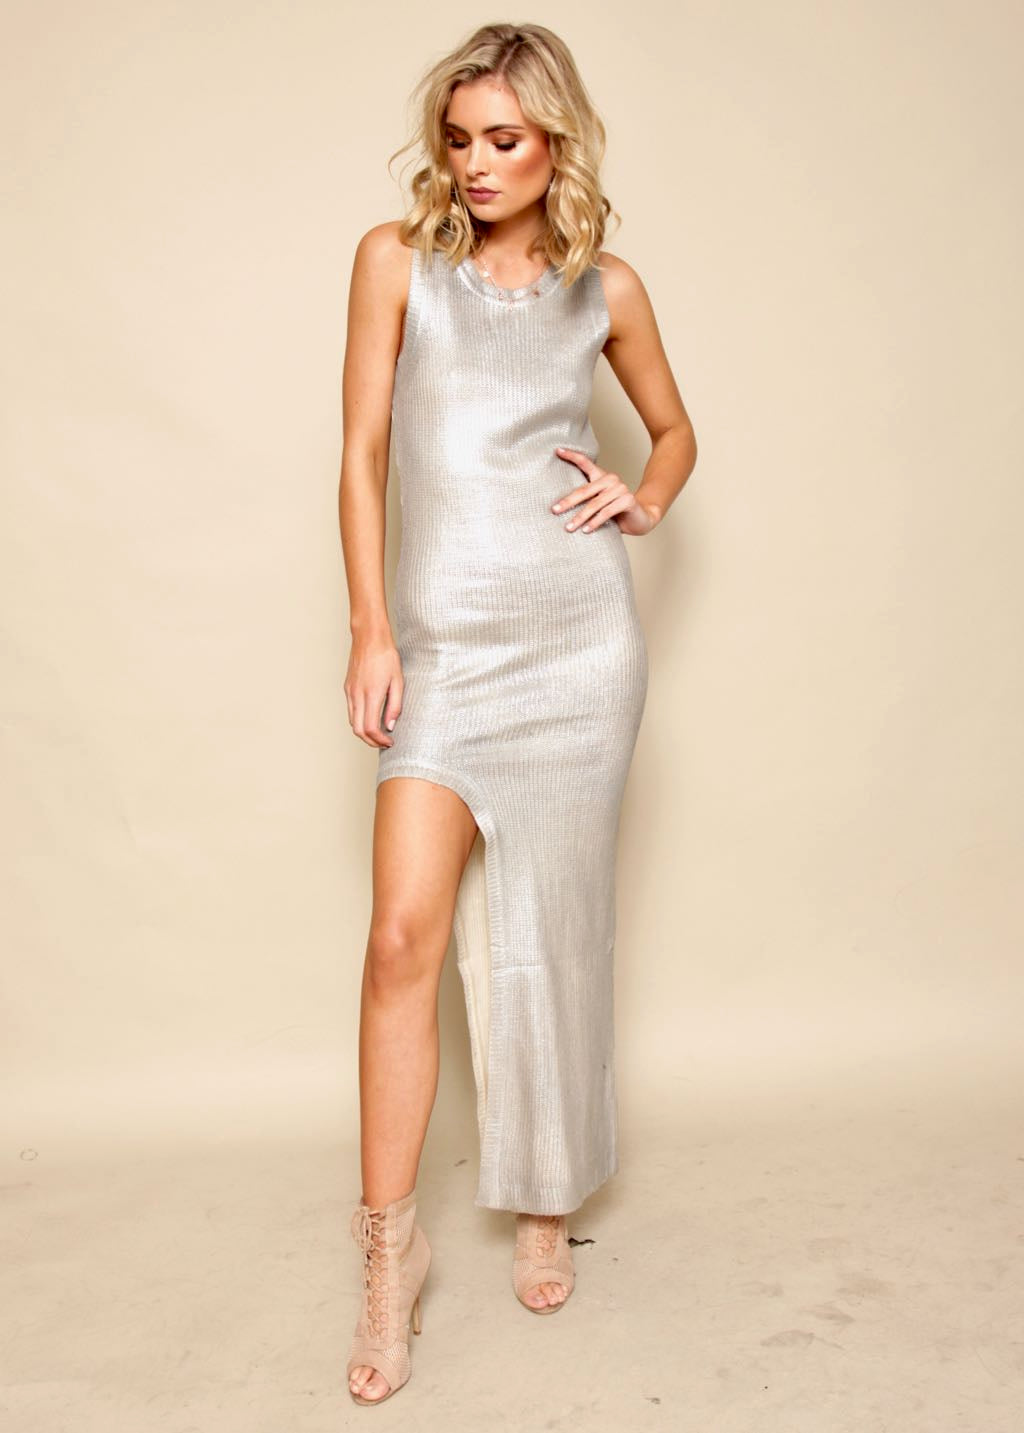 Rock With You Knit Dress - Silver